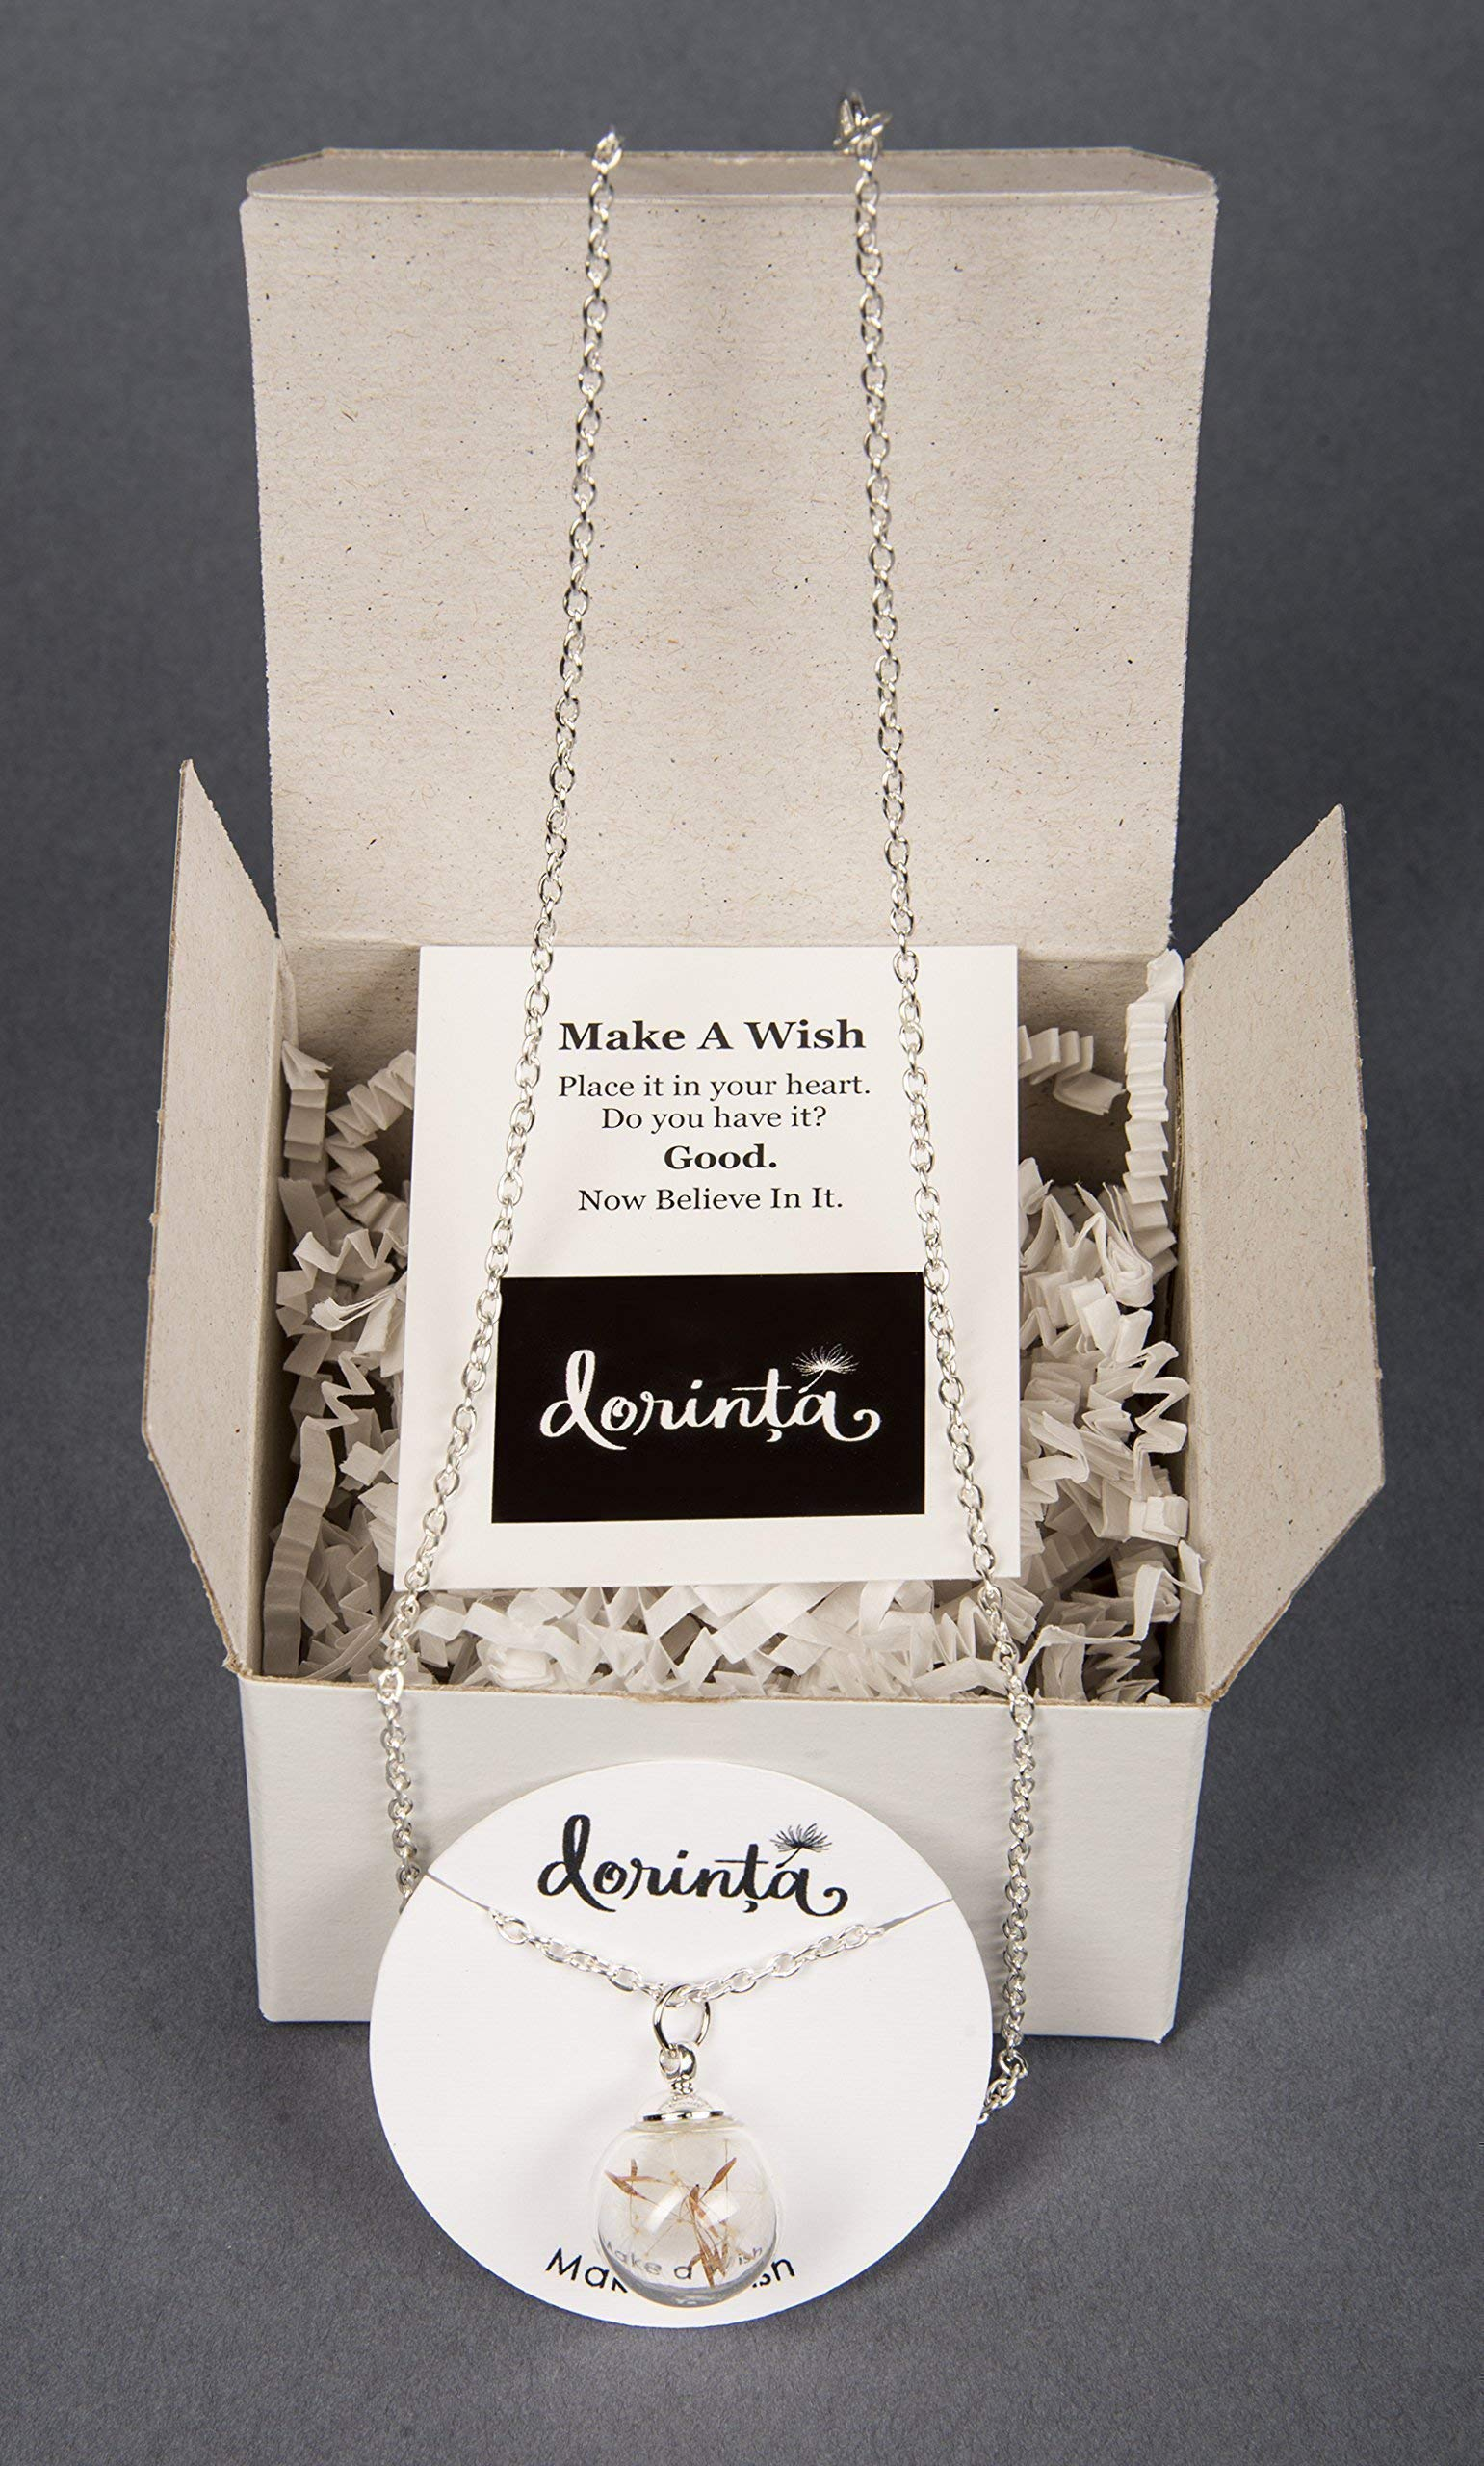 Remember Making a Wish on a Dandelion? Seed Wishes in Hand Blown Glass Pendant Wish Necklace. Gift box and Quote. Best Friends Daughters Sisters Military Brats Moms by Dorinta